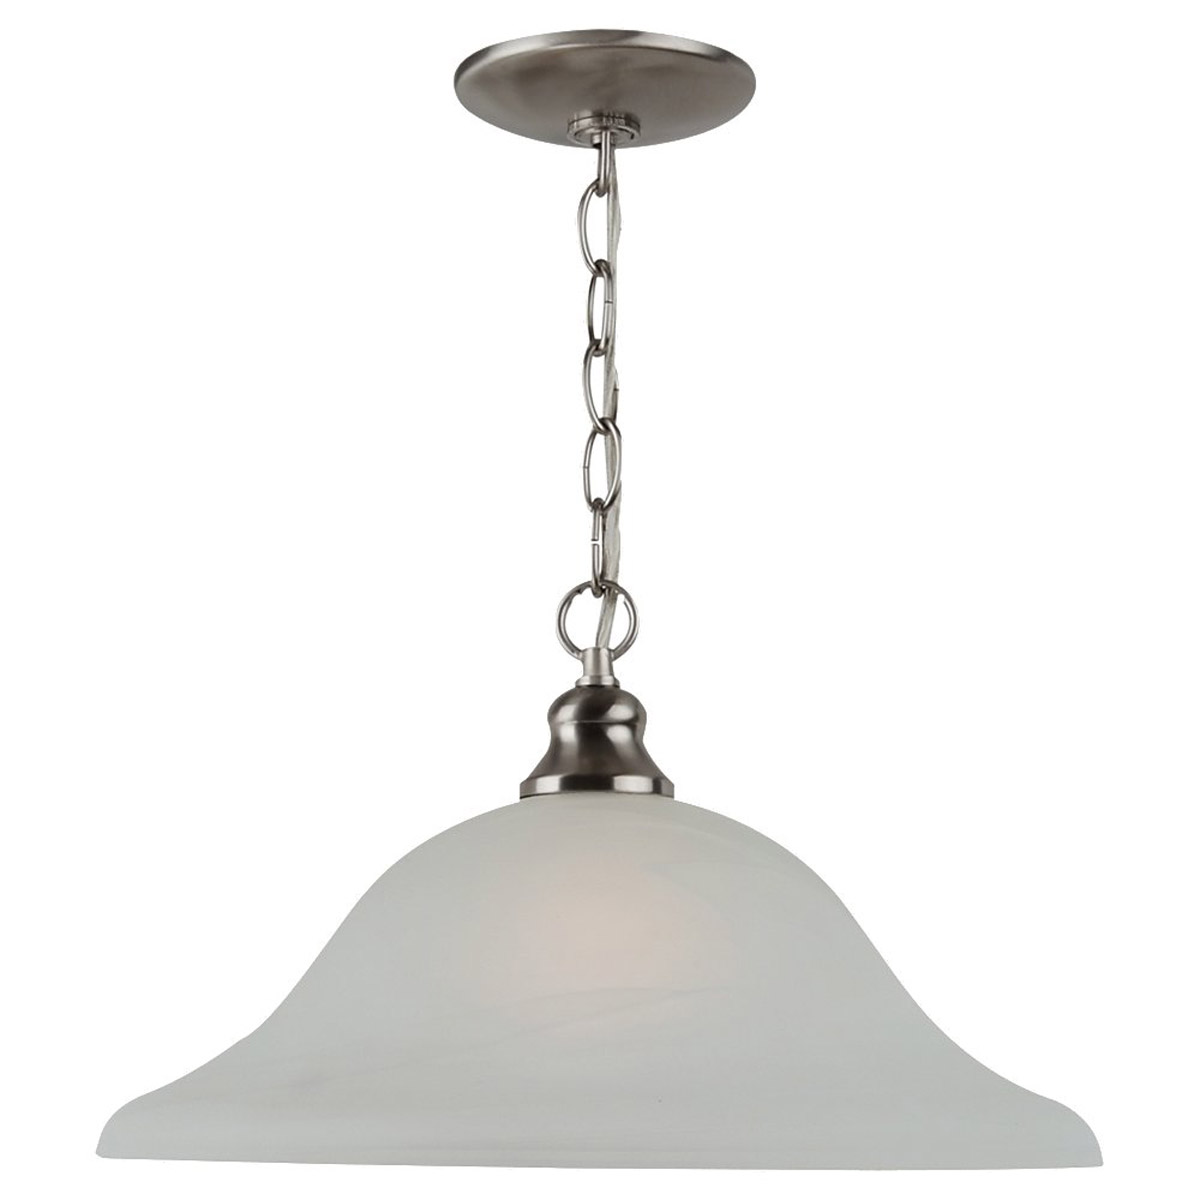 Sea Gull Lighting Windgate 1 Light Pendant in Brushed Nickel 65942-962